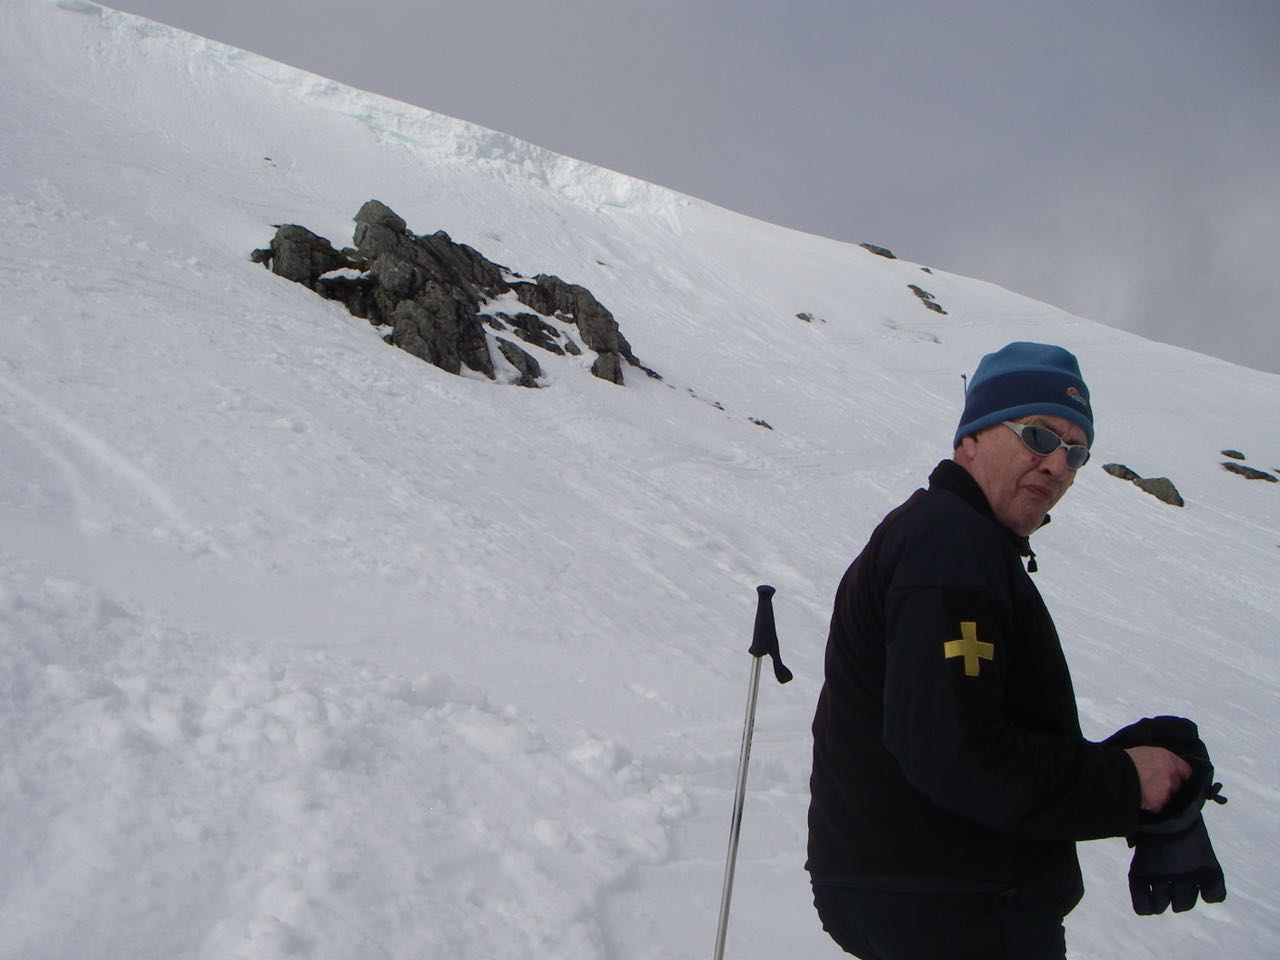 Bobby Williamson the Glen Coe ski patroller concerned about further crown wall collapse.